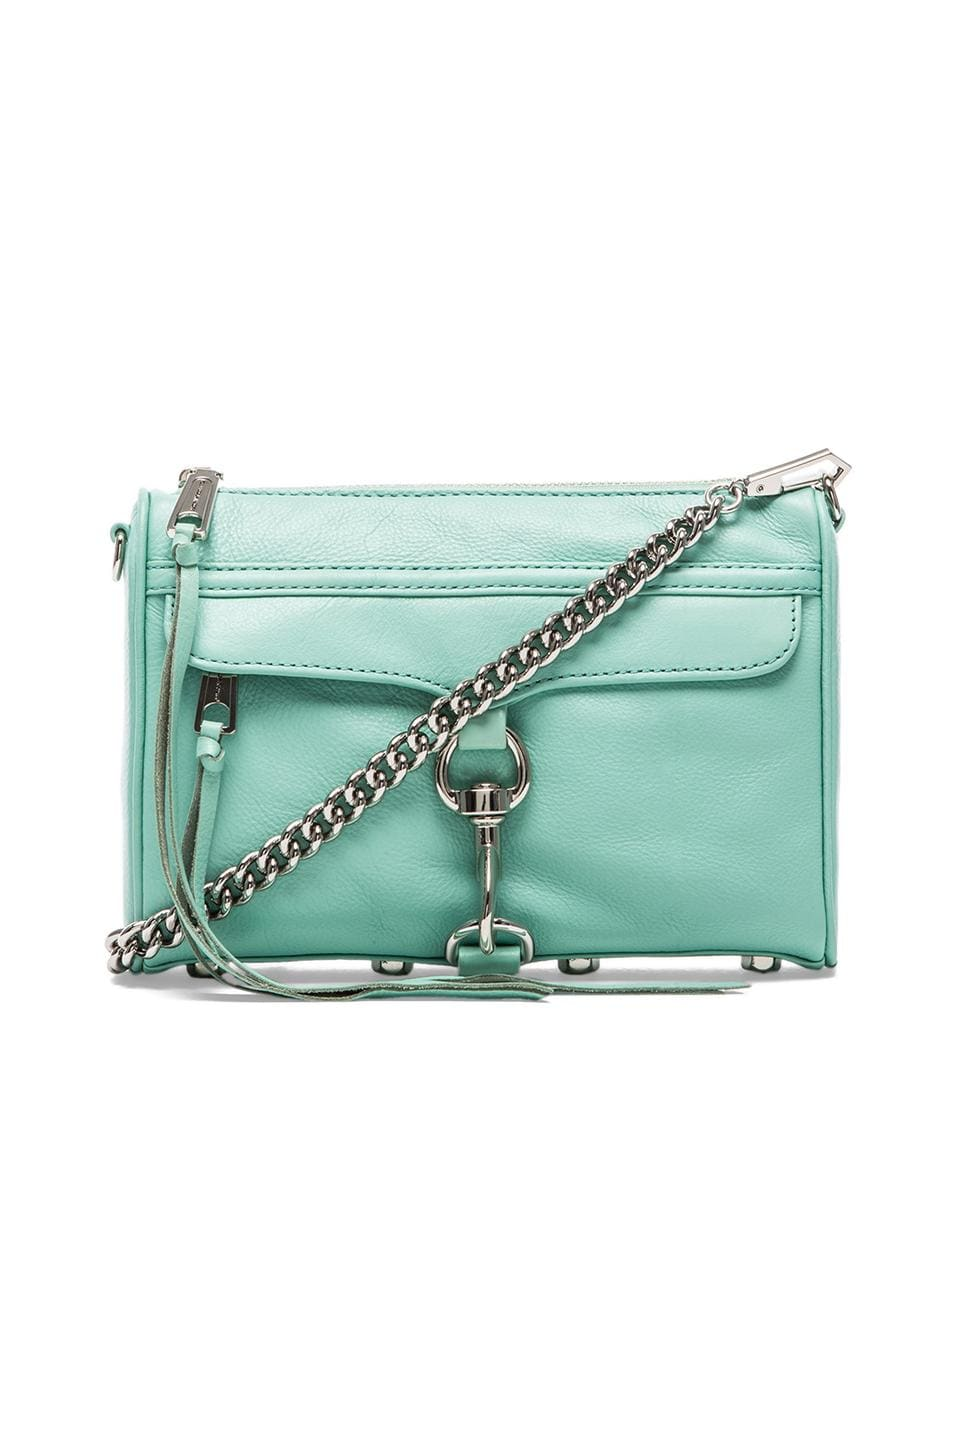 Rebecca Minkoff Mini MAC in Minty